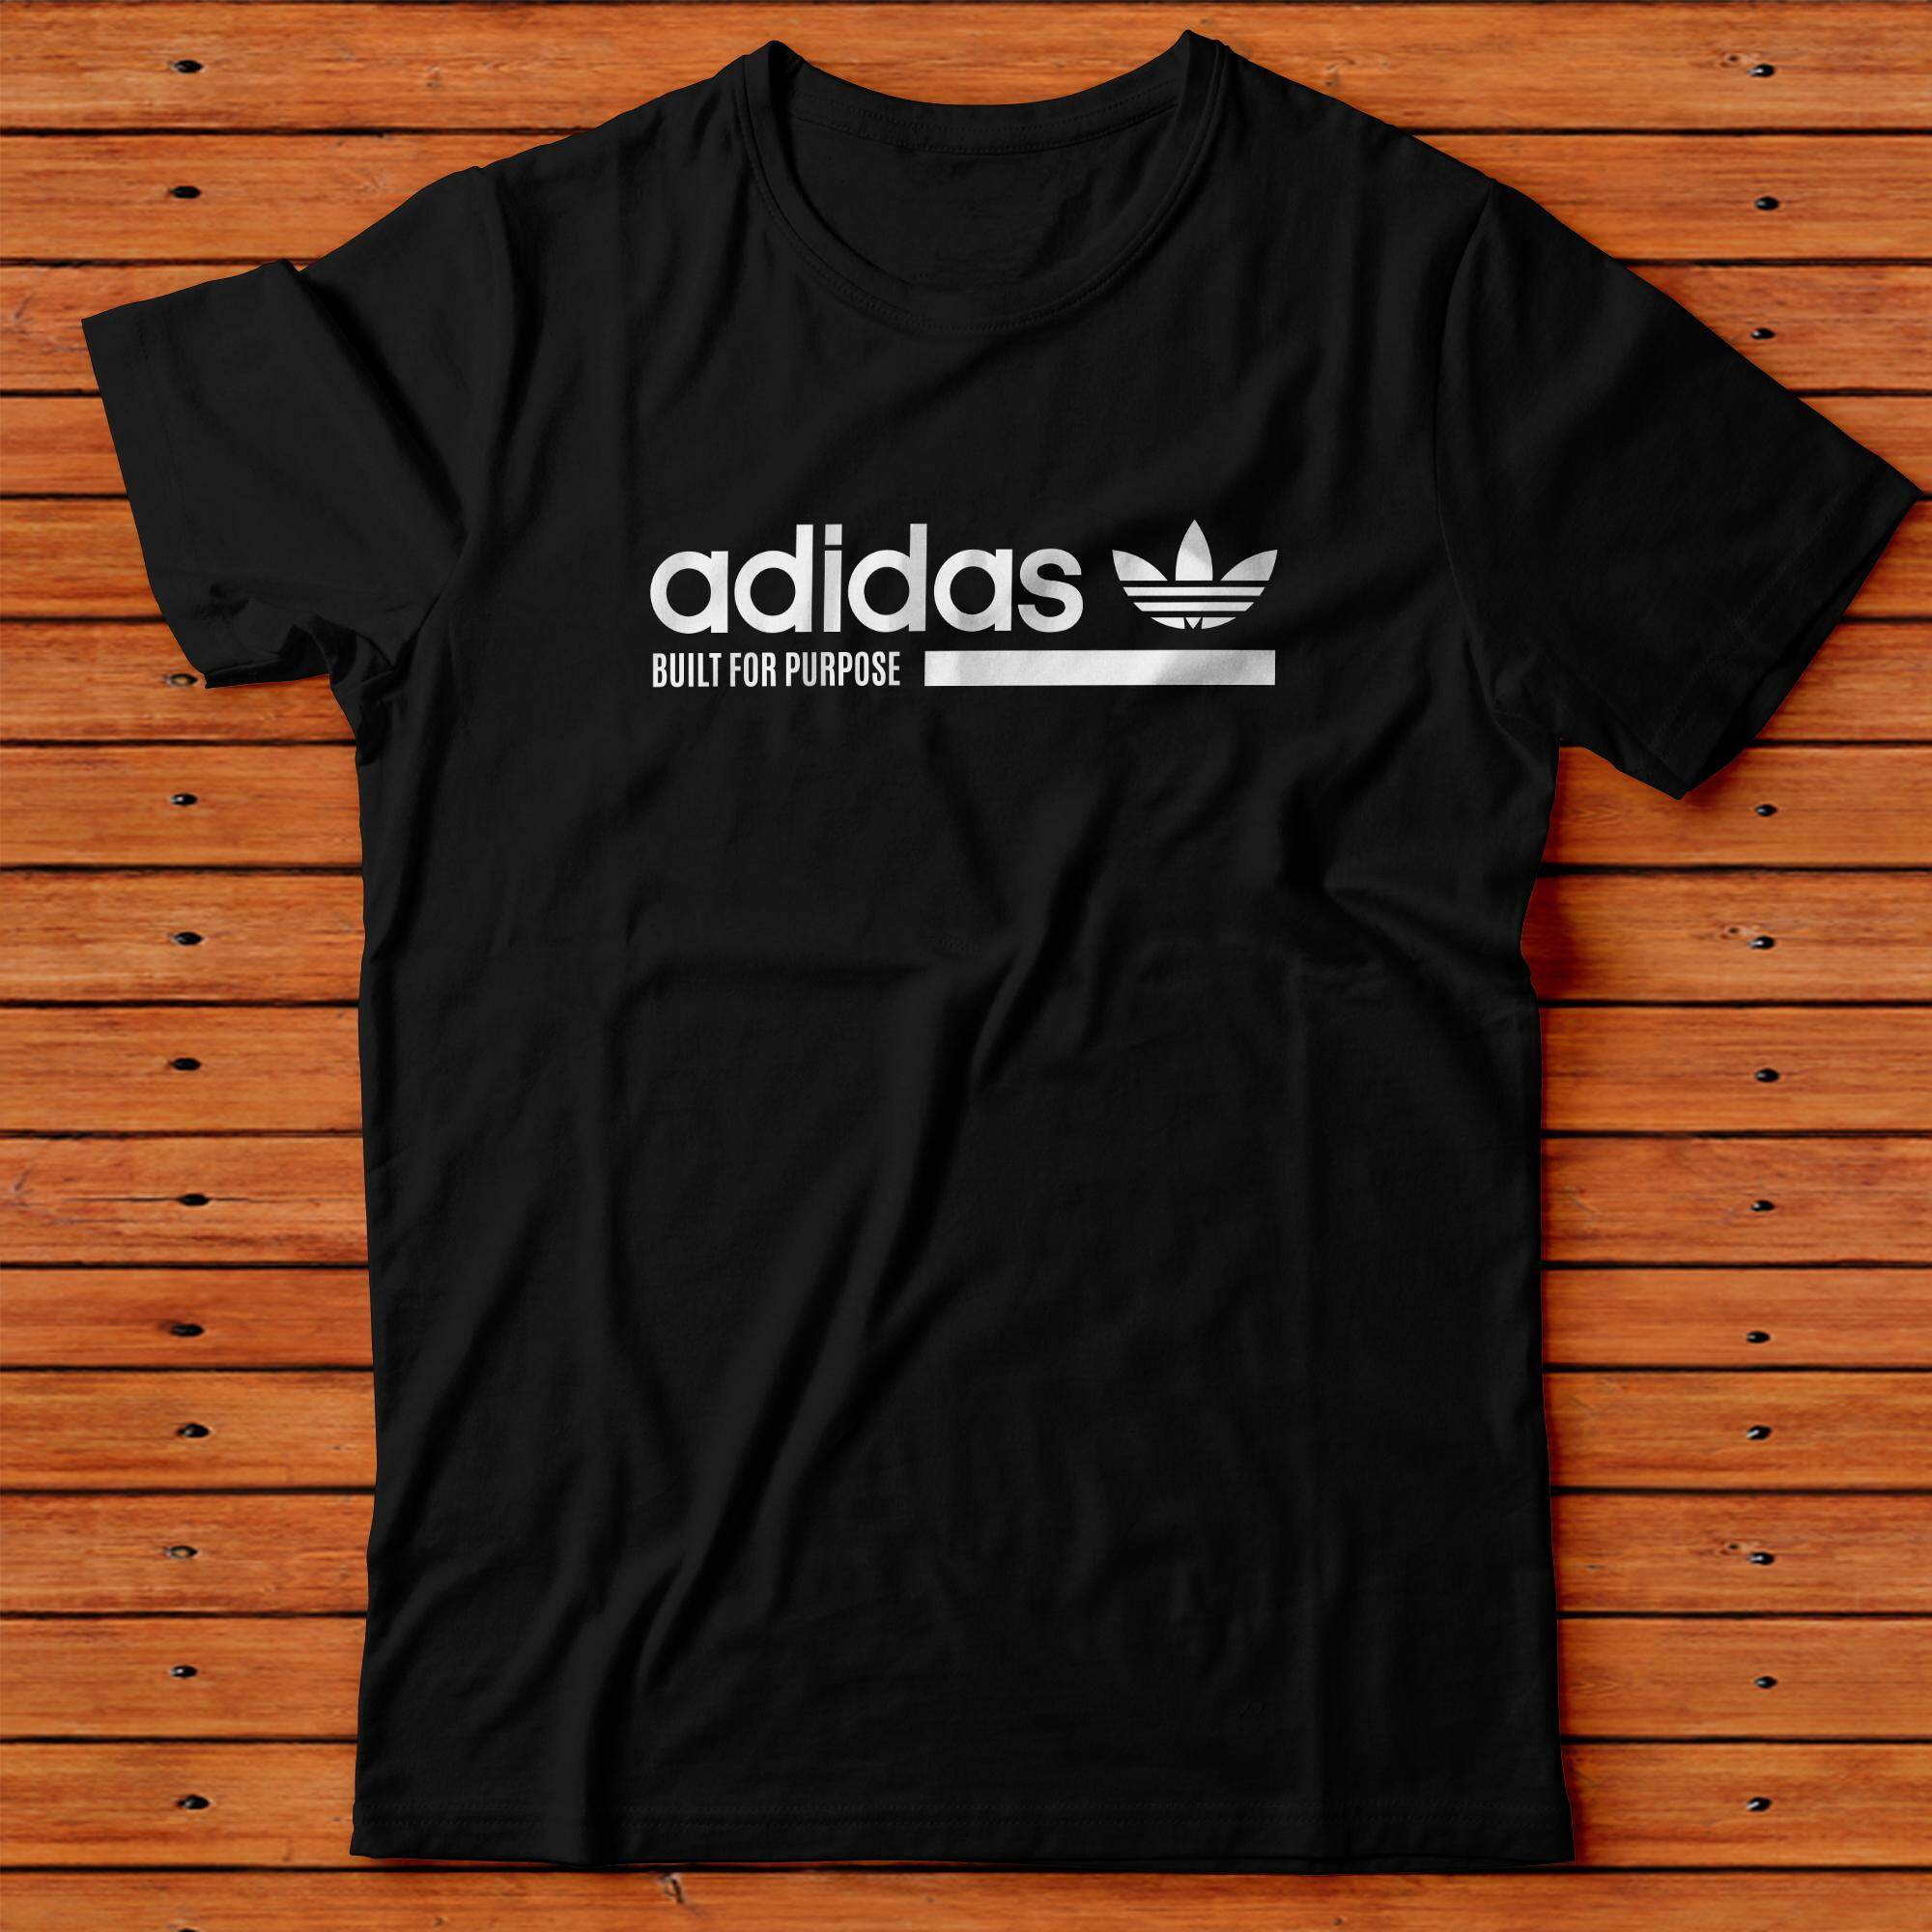 65f57881f21a46 Custom T-Shirt Products for the Best Prices in Malaysia